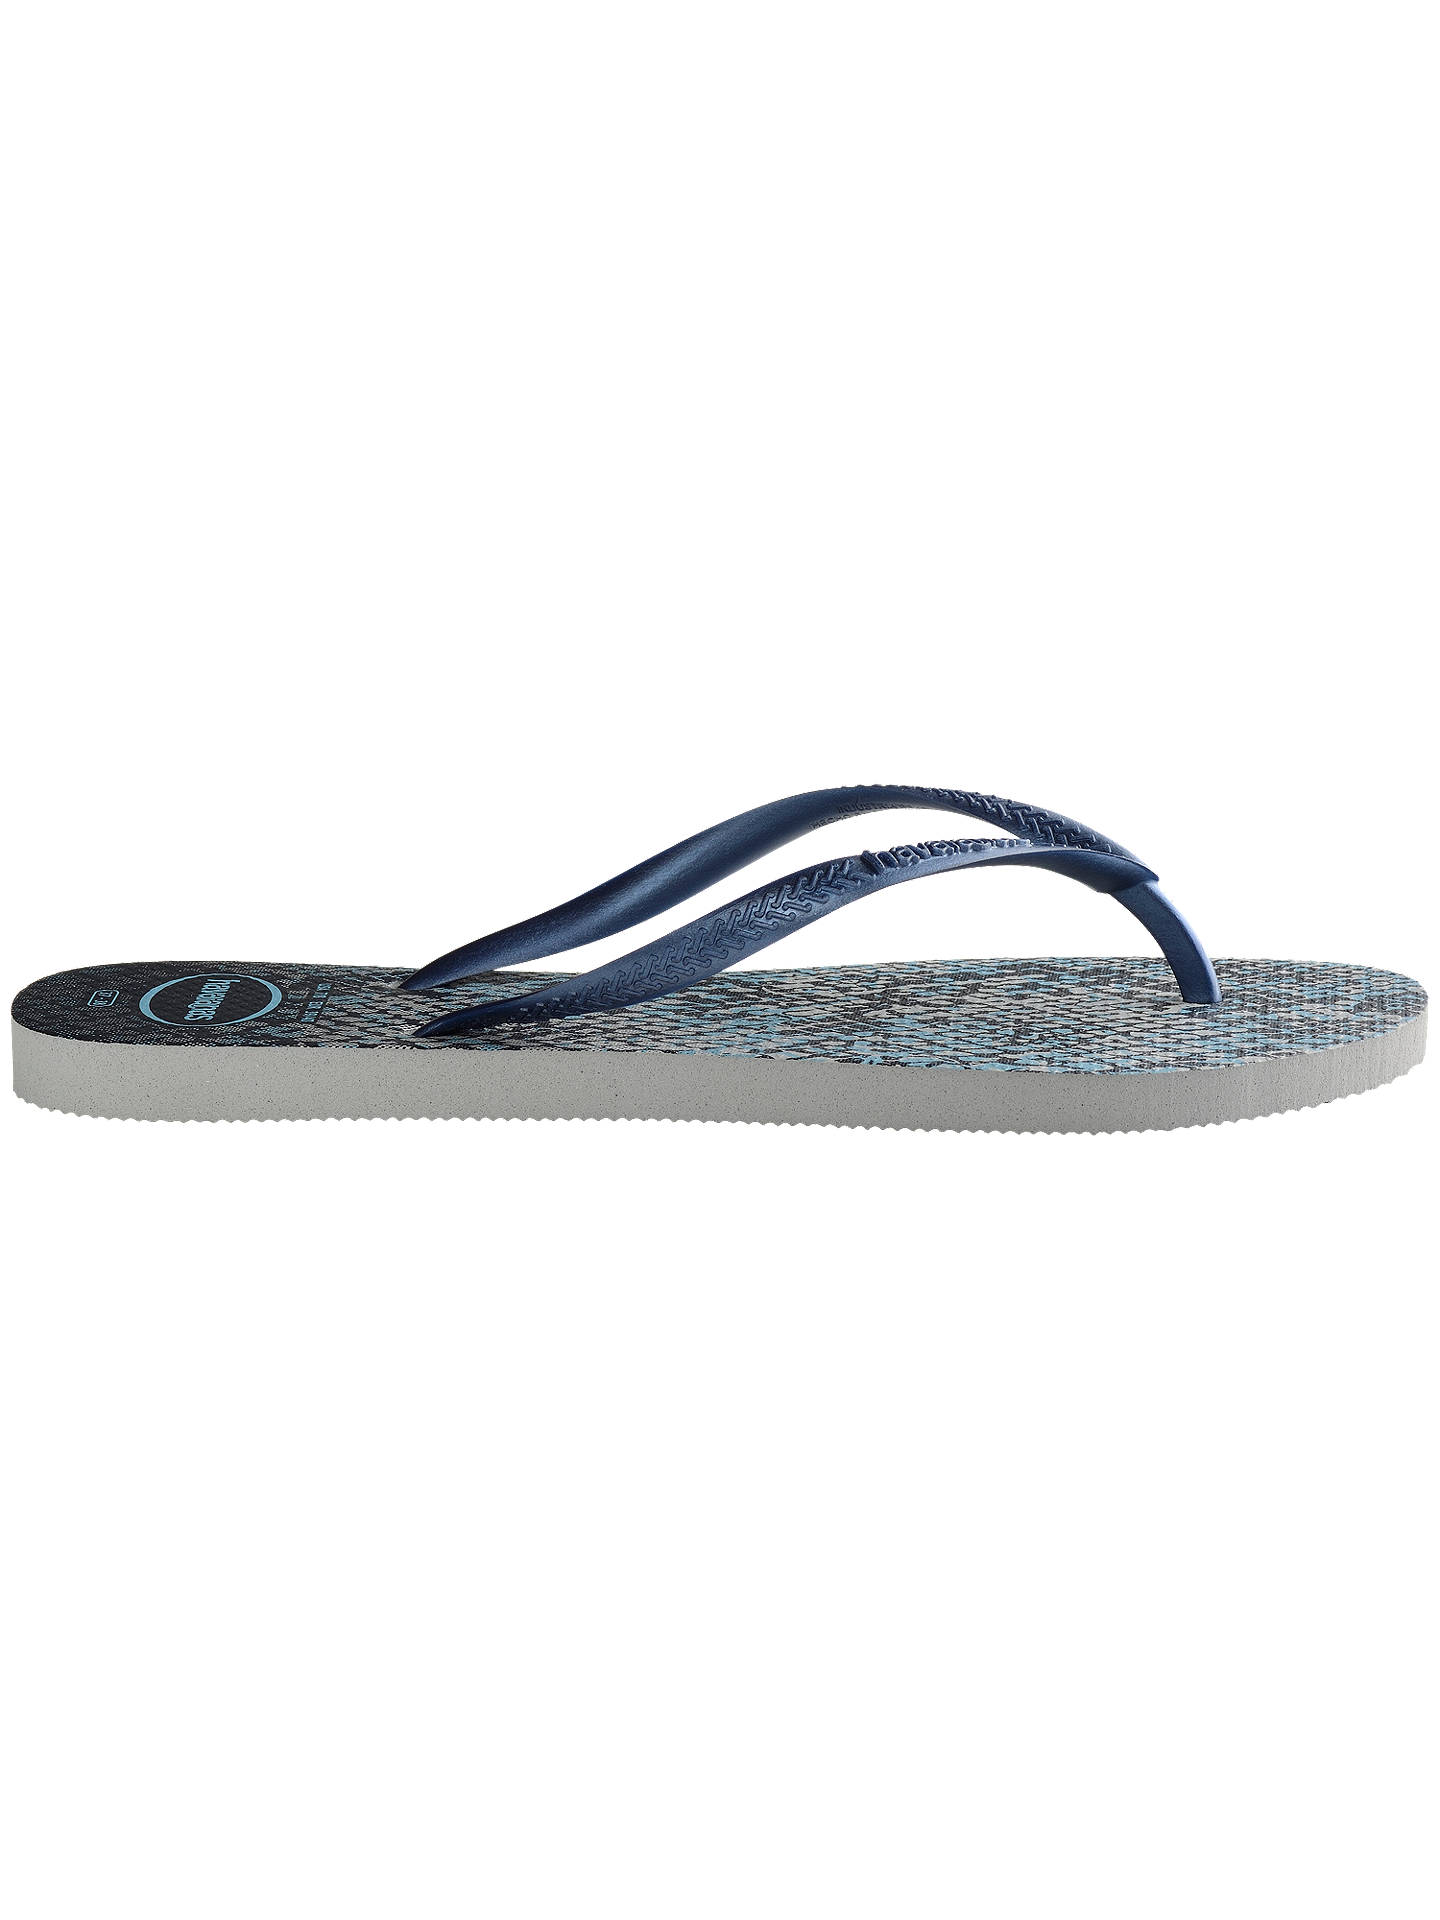 f21125434d3 Havaianas Slim Animal Print Flip Flops at John Lewis   Partners